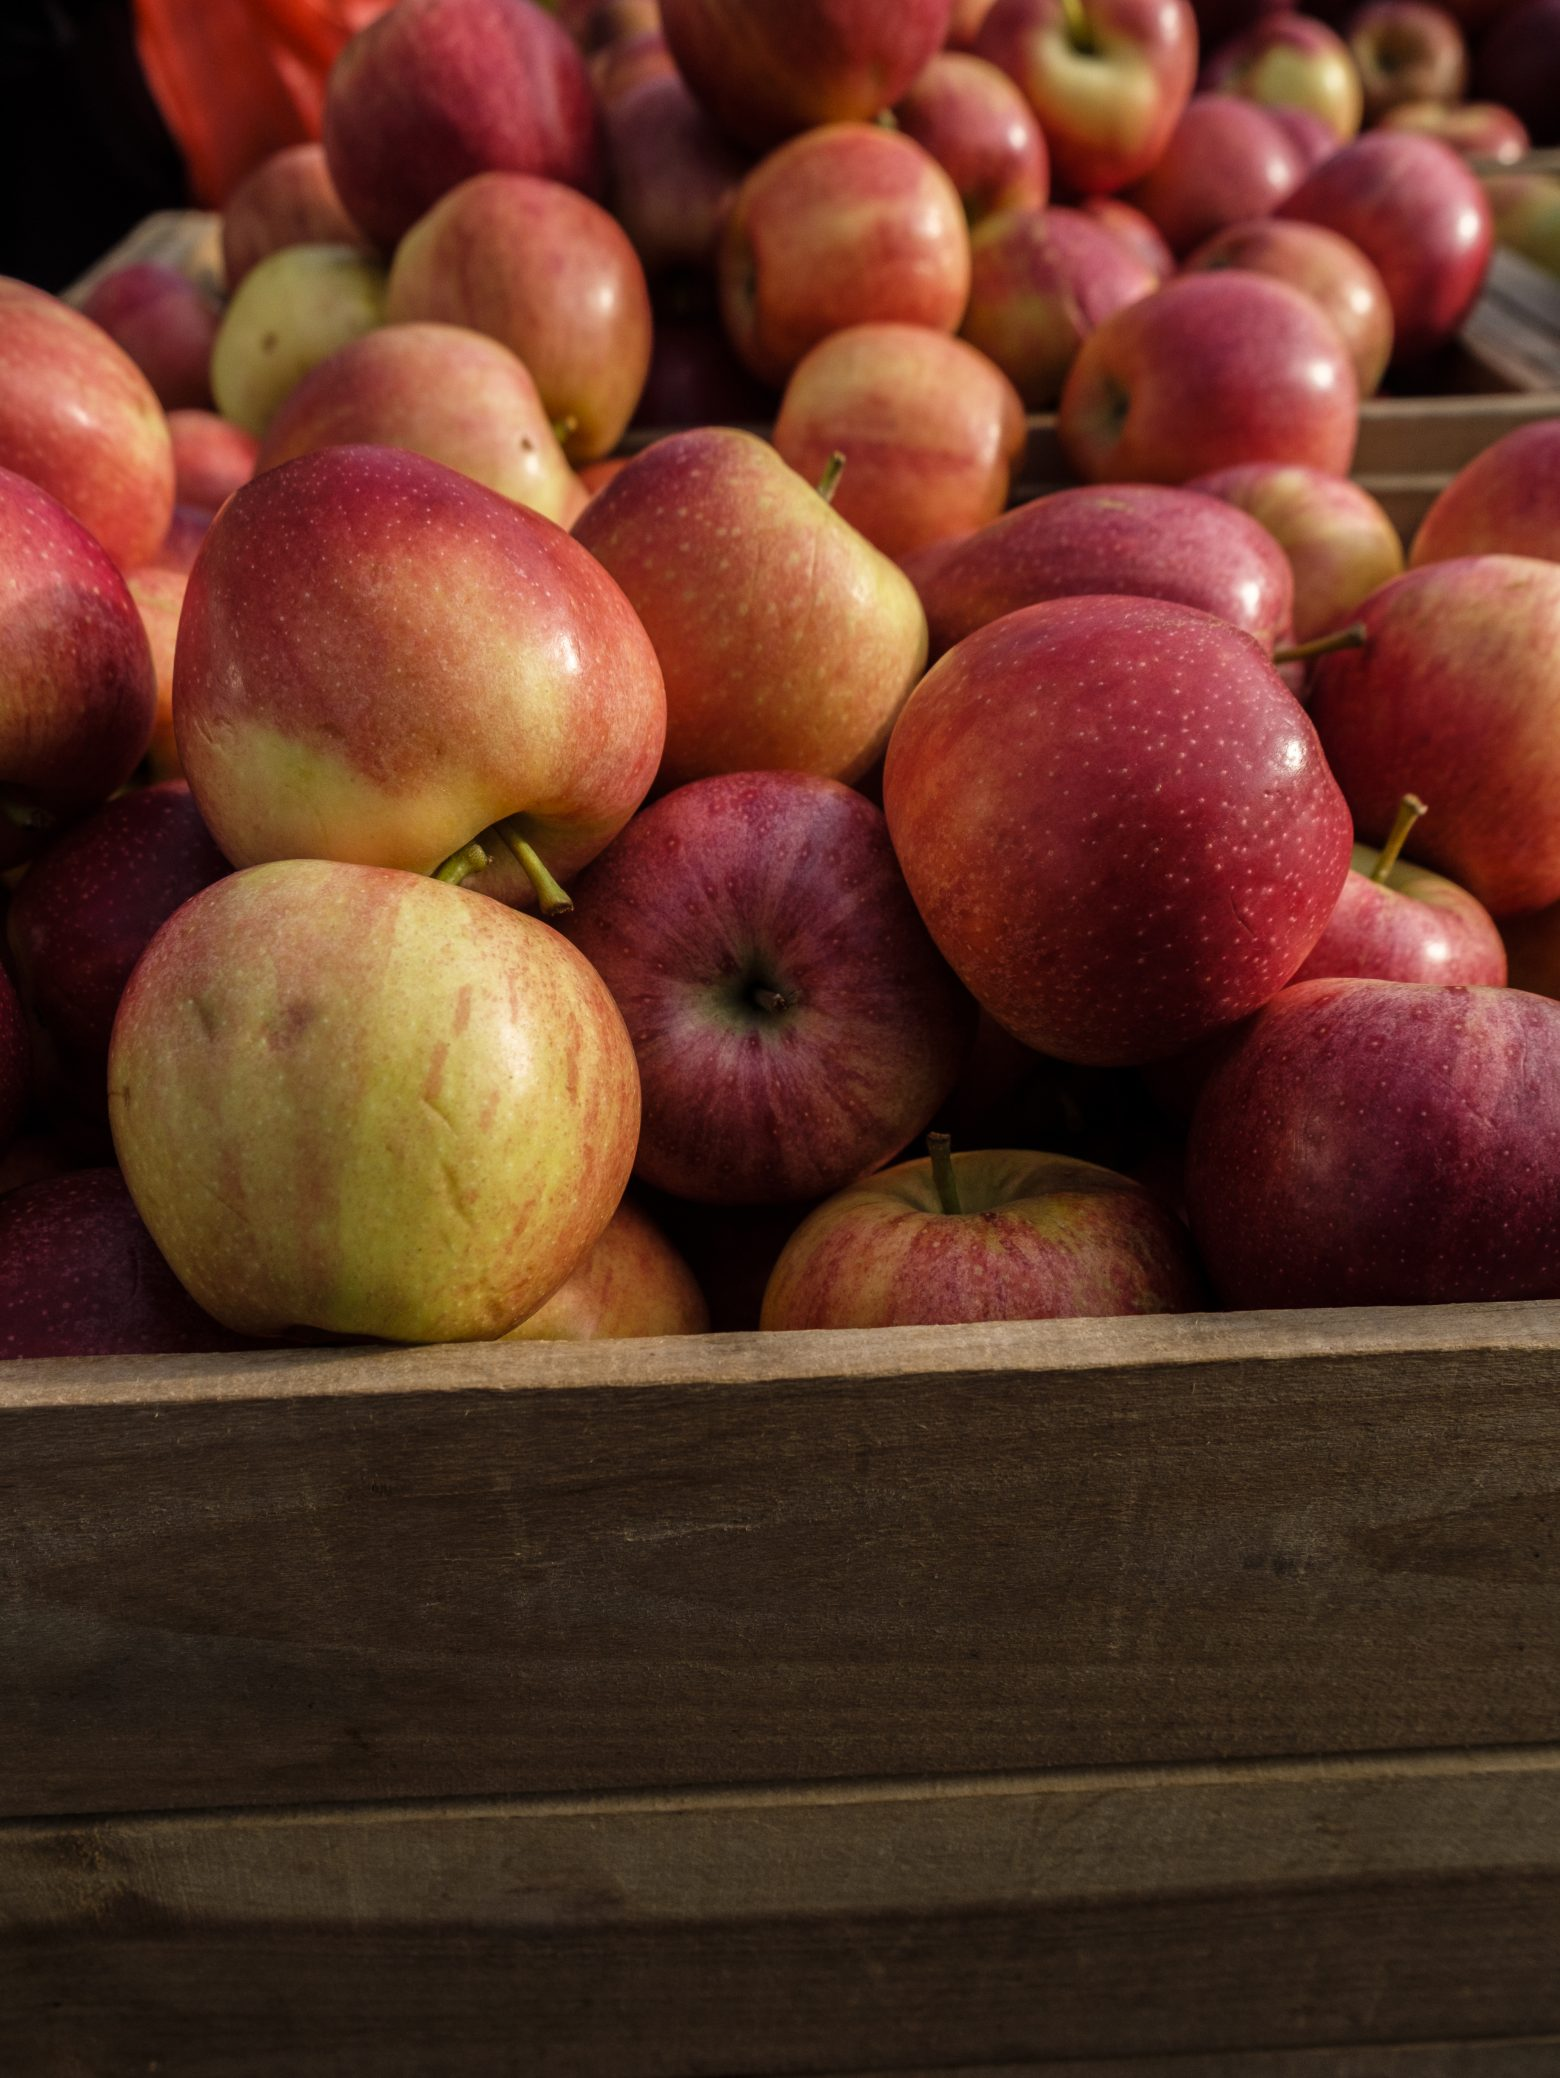 Free stock photo Close-up of apples in wooden crate